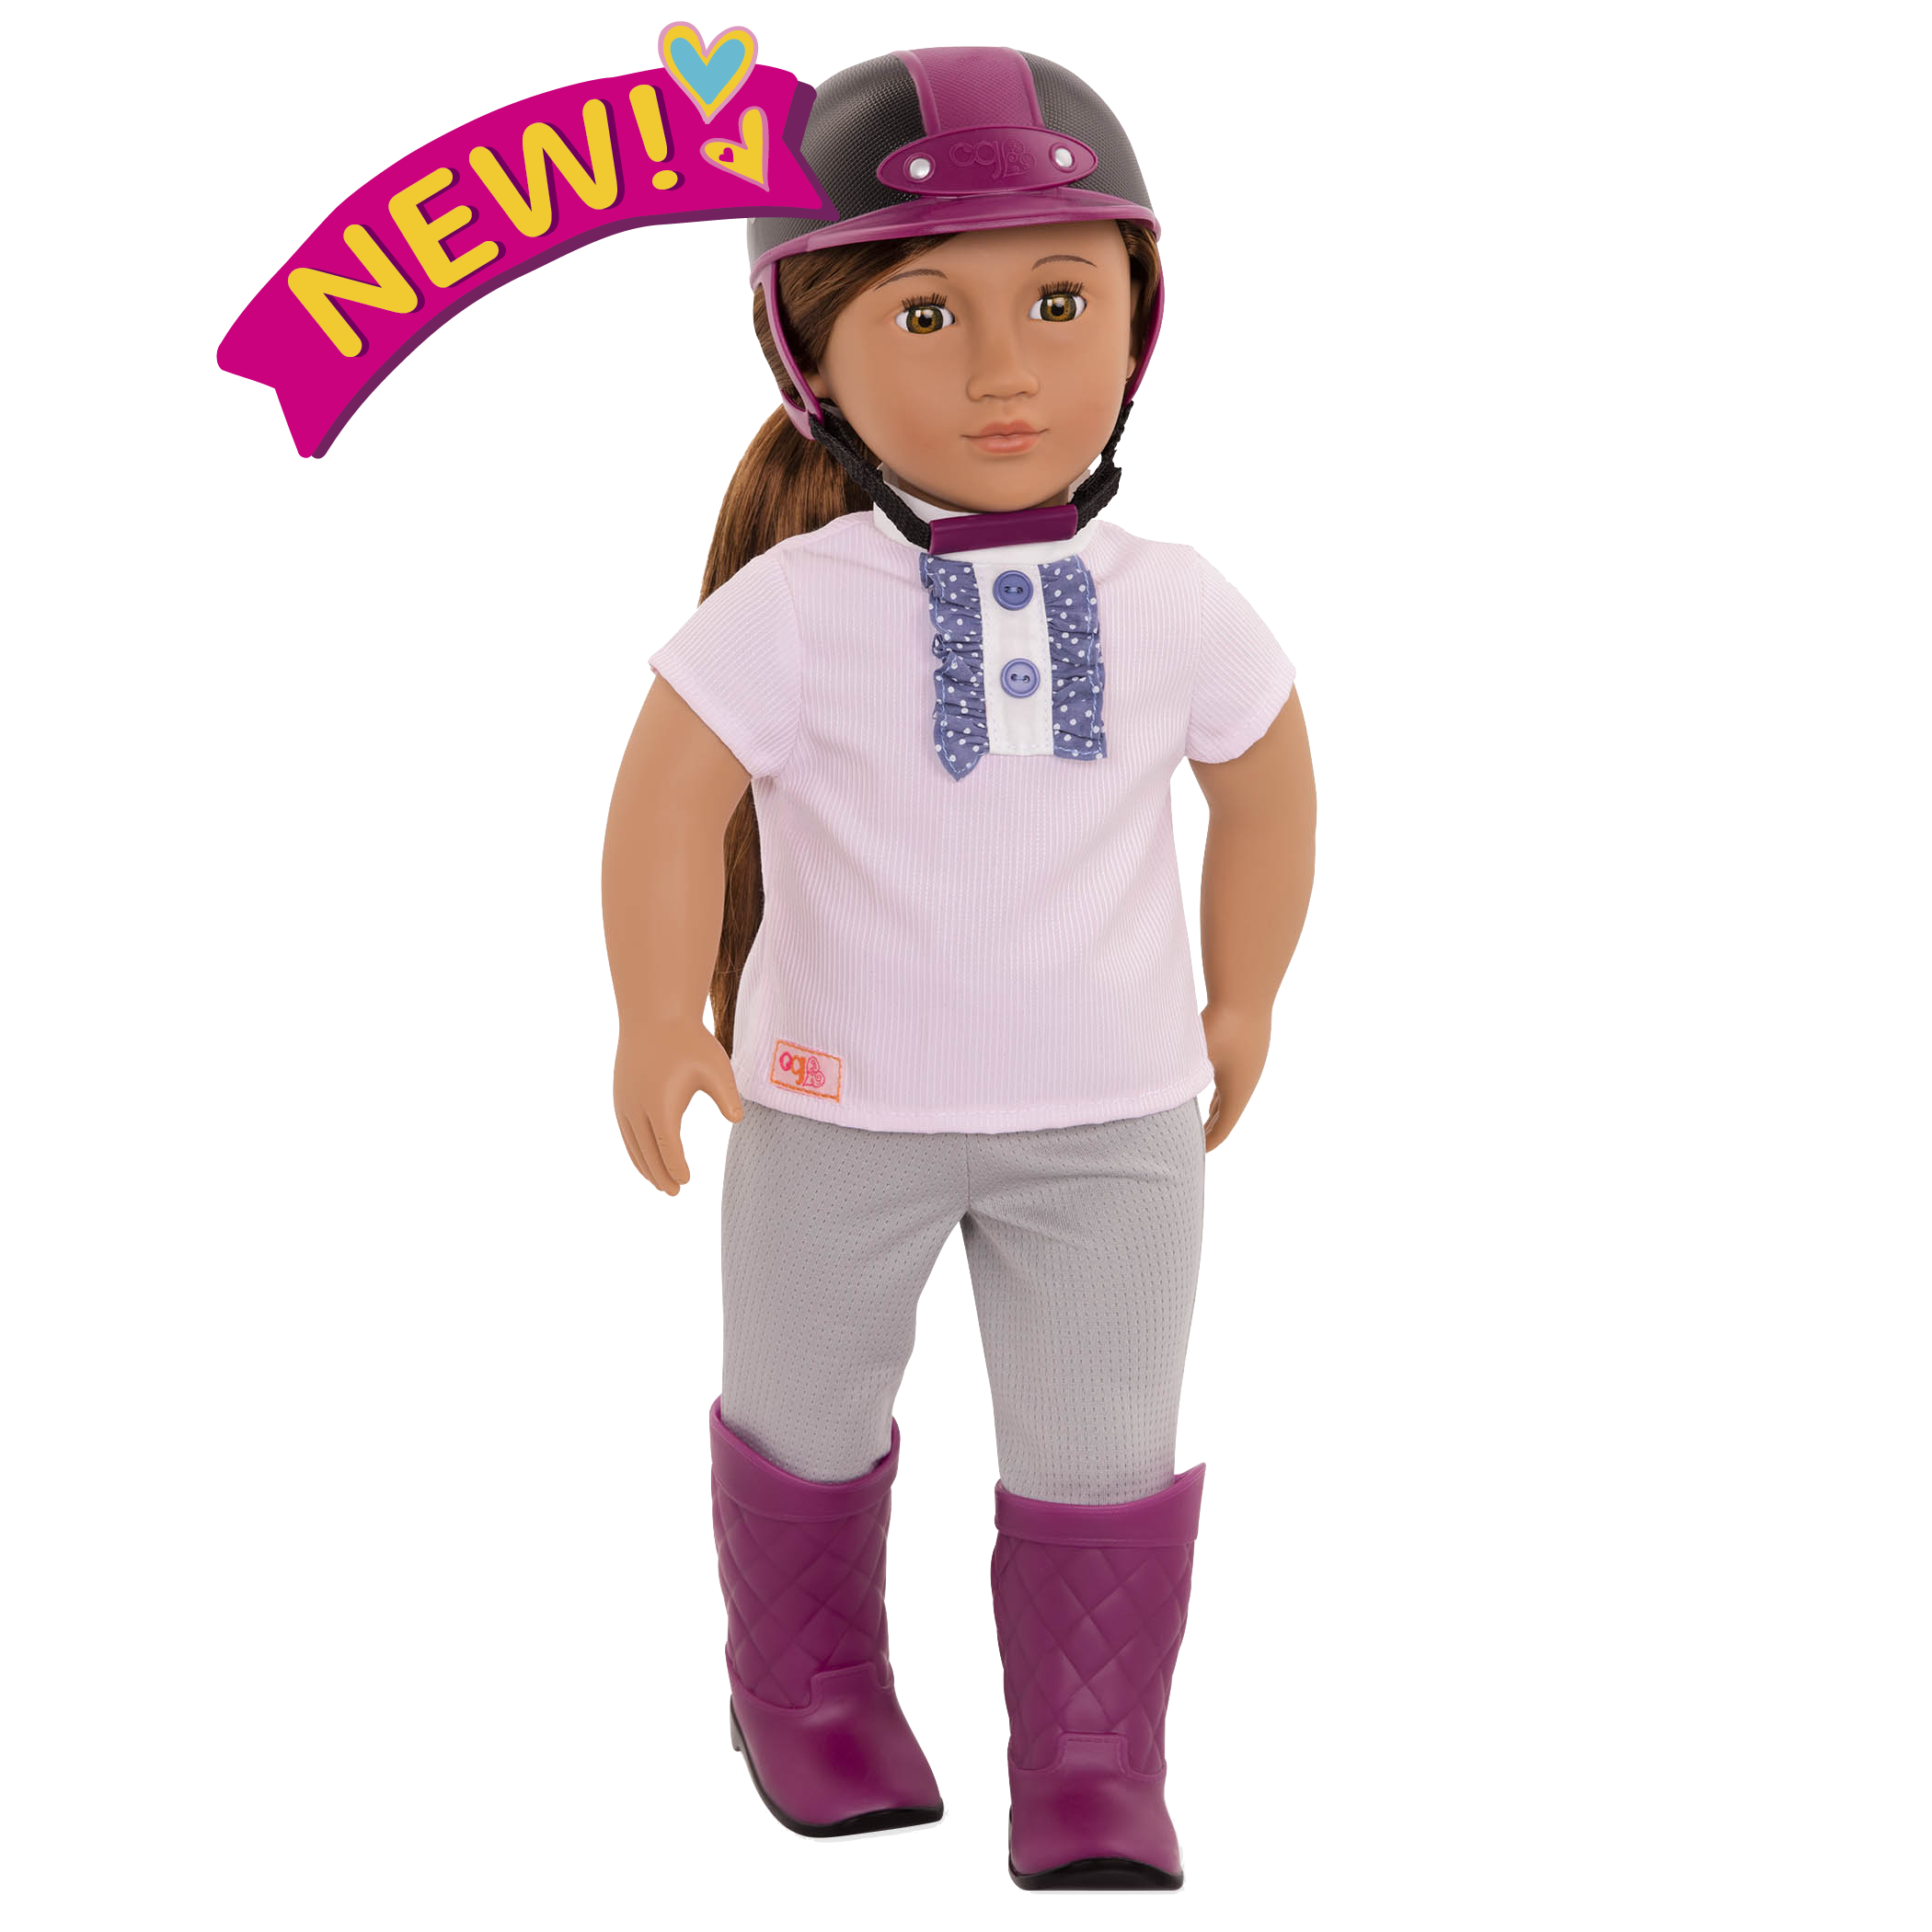 Elliana 18-inch Riding Doll